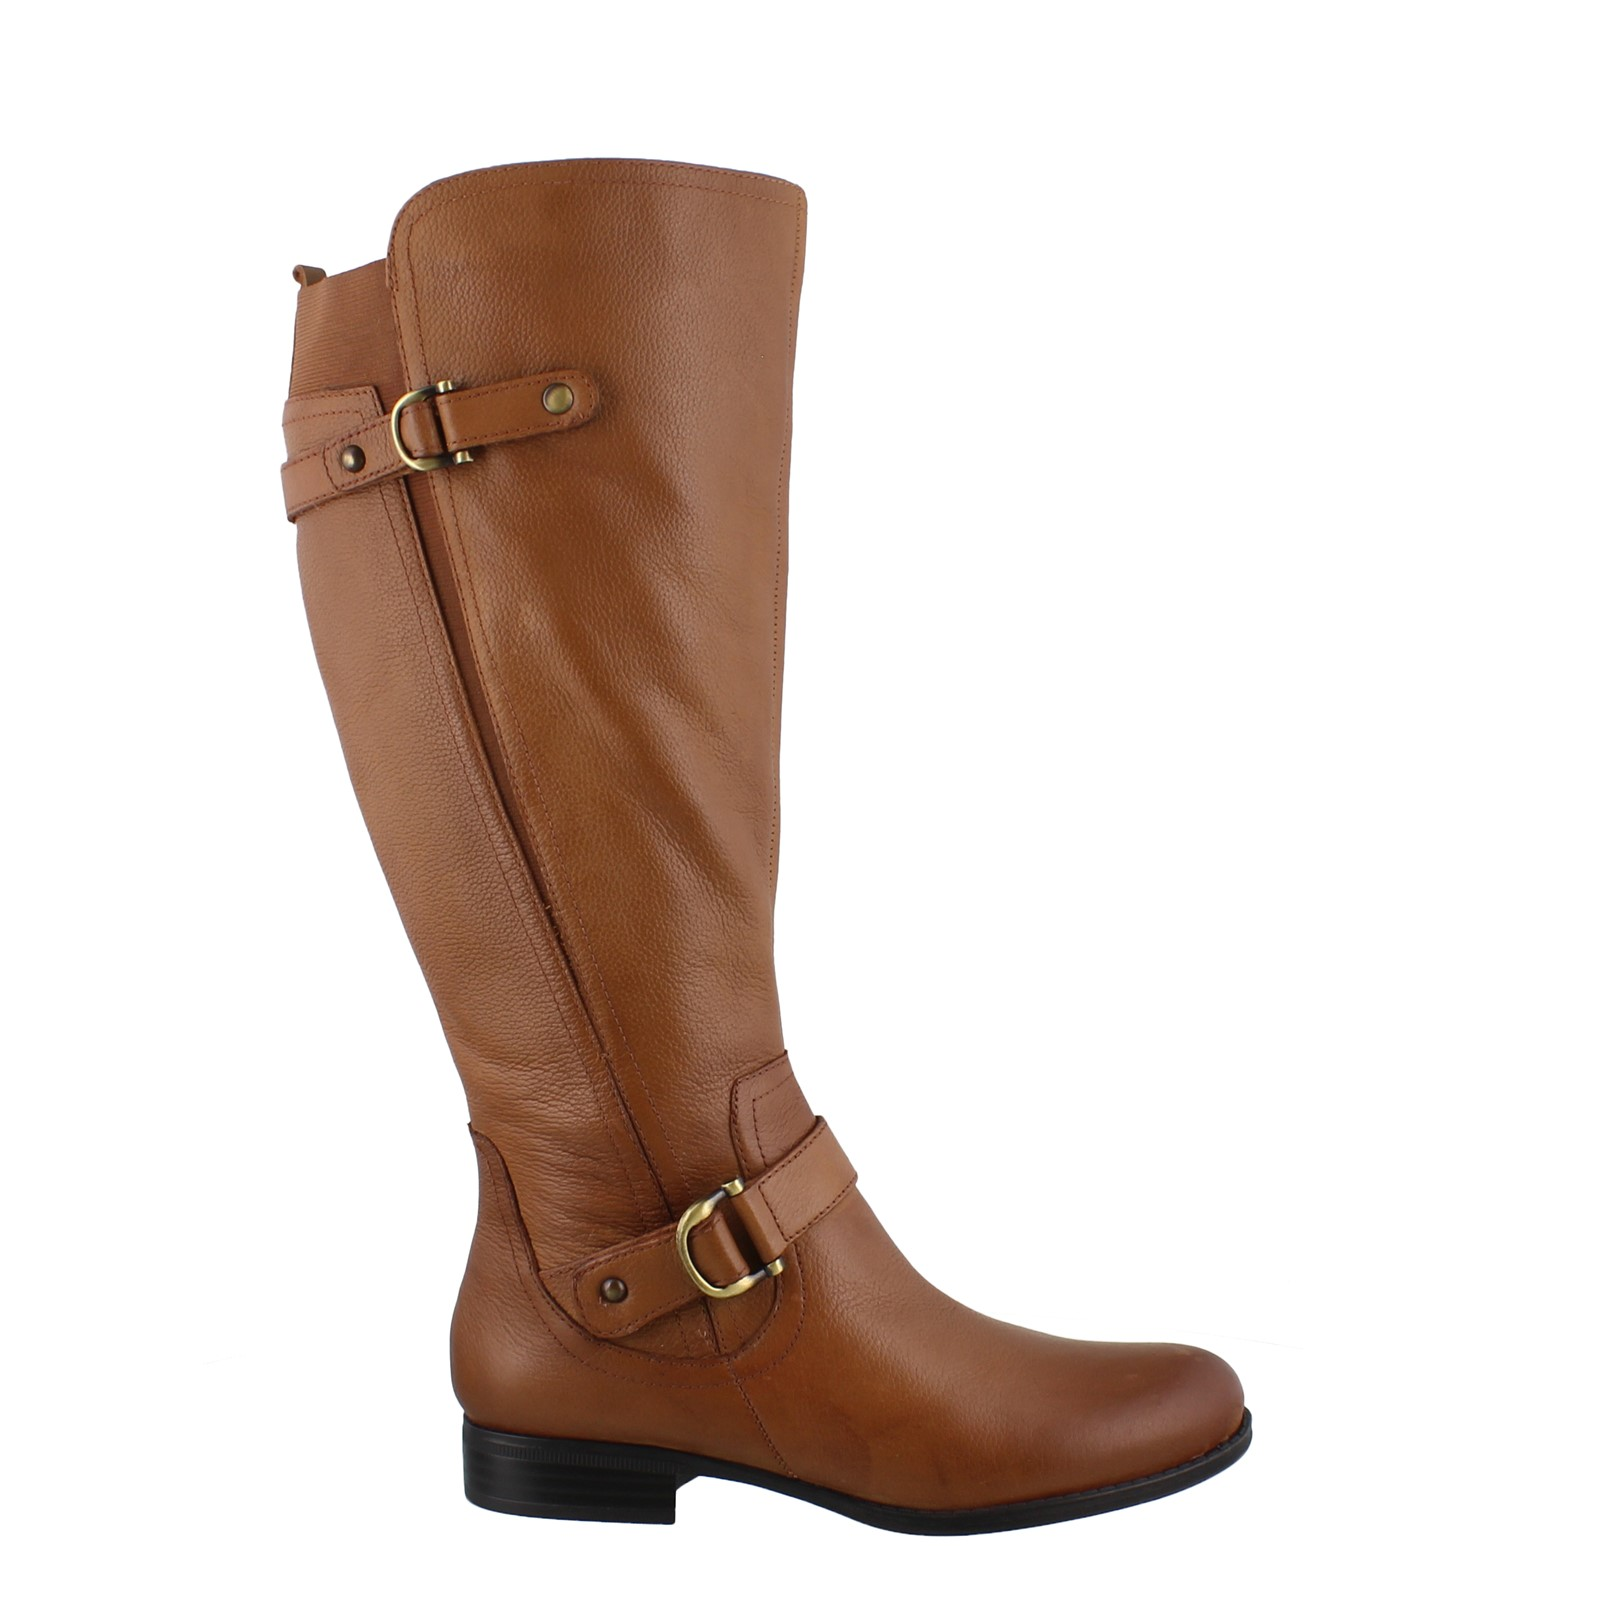 Women's Naturalizer, Jillian Boot - Wide Calf